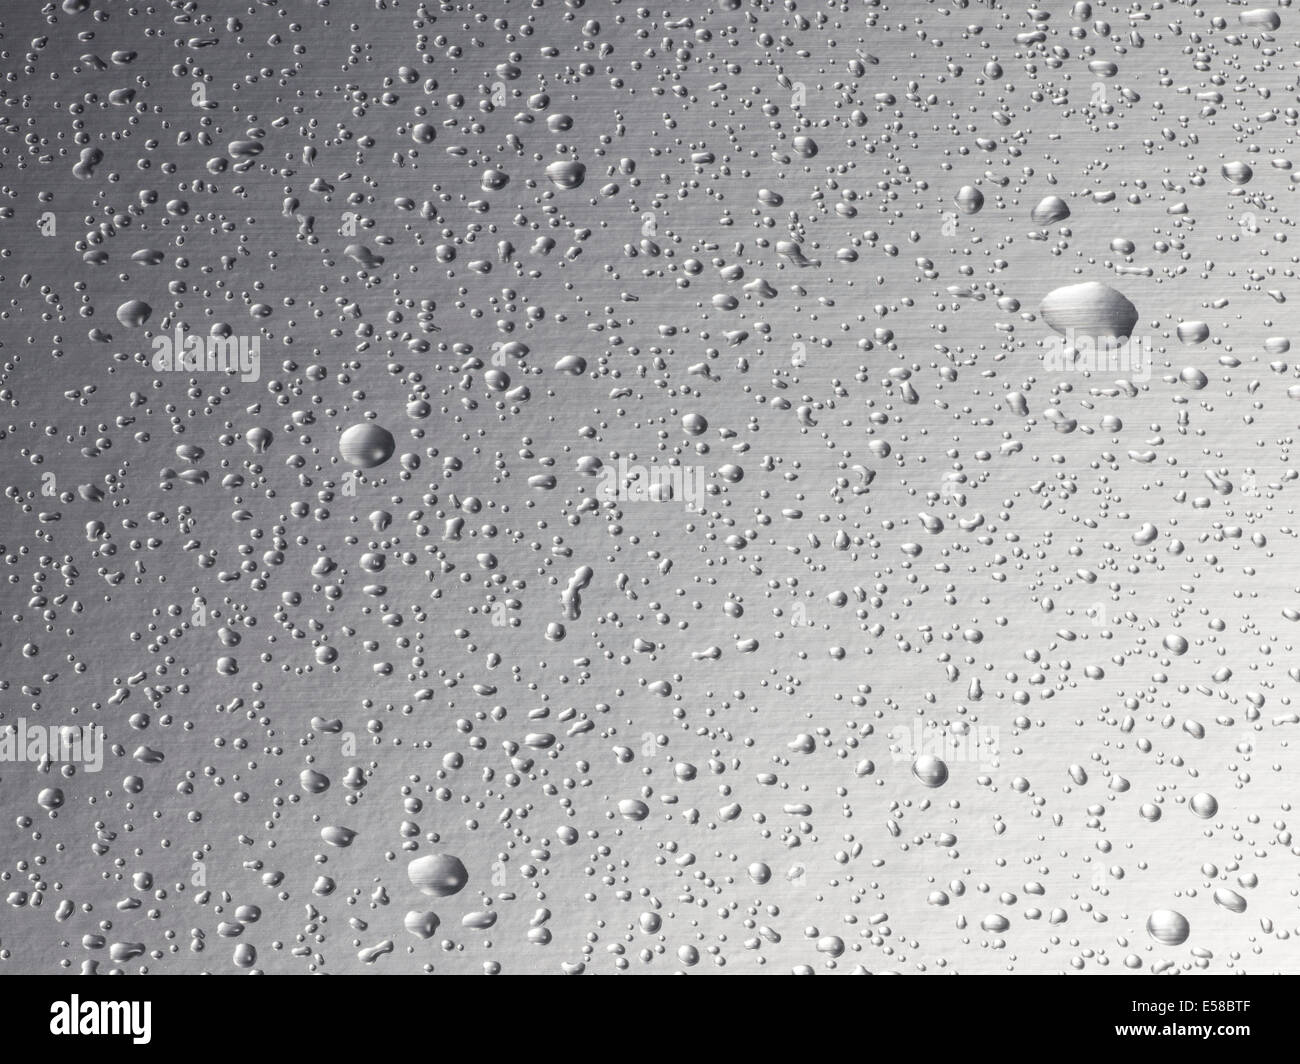 Water droplets on a steel background - Stock Image